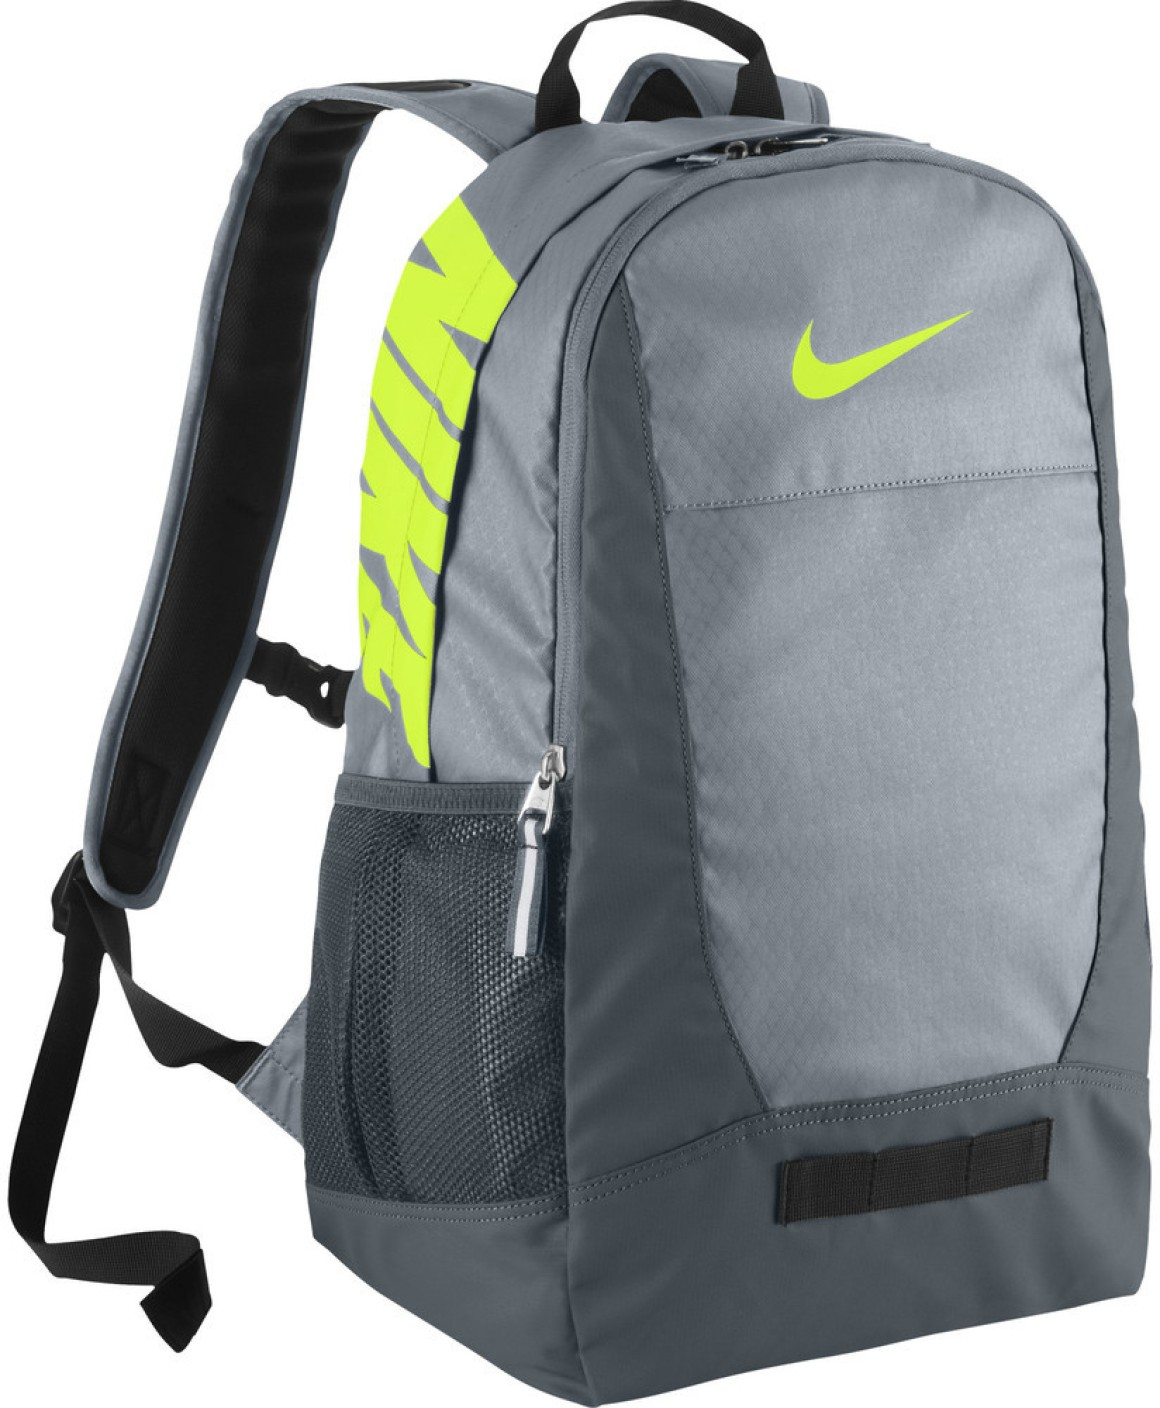 efba3ee492e4 ... Nike Team Training Max Air Large Backpack.